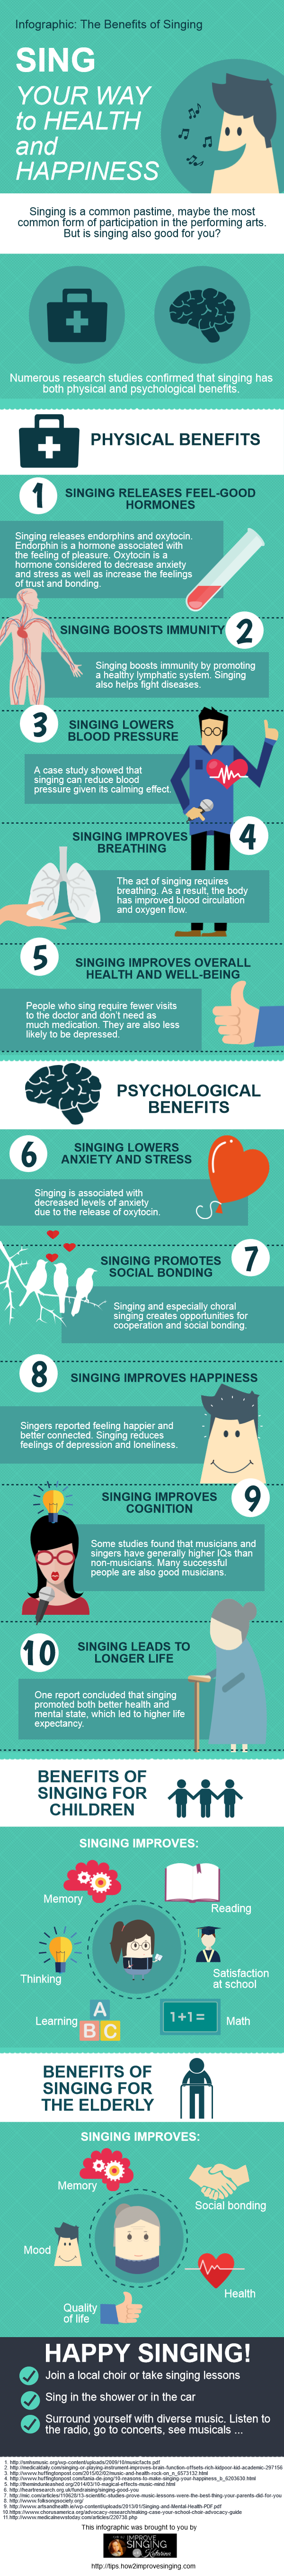 Benefits of Singing infographic